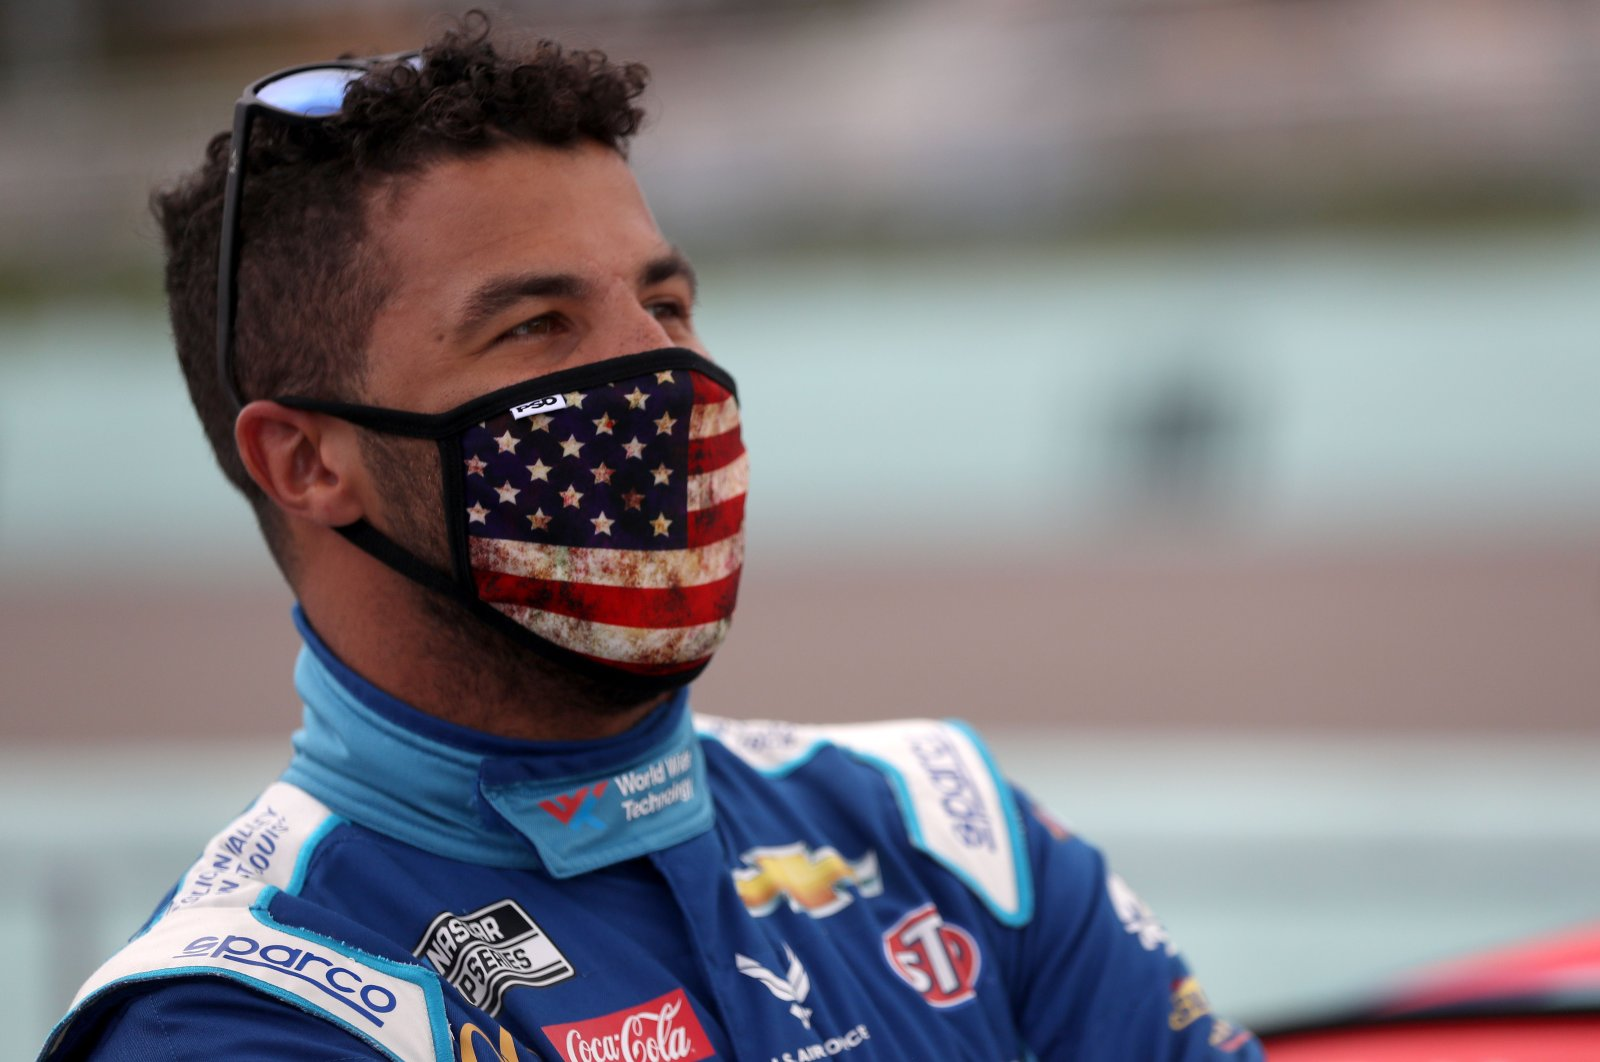 Bubba Wallace stands on the grid prior to a race in Homestead, Florida, June 14, 2020. (AFP Photo)